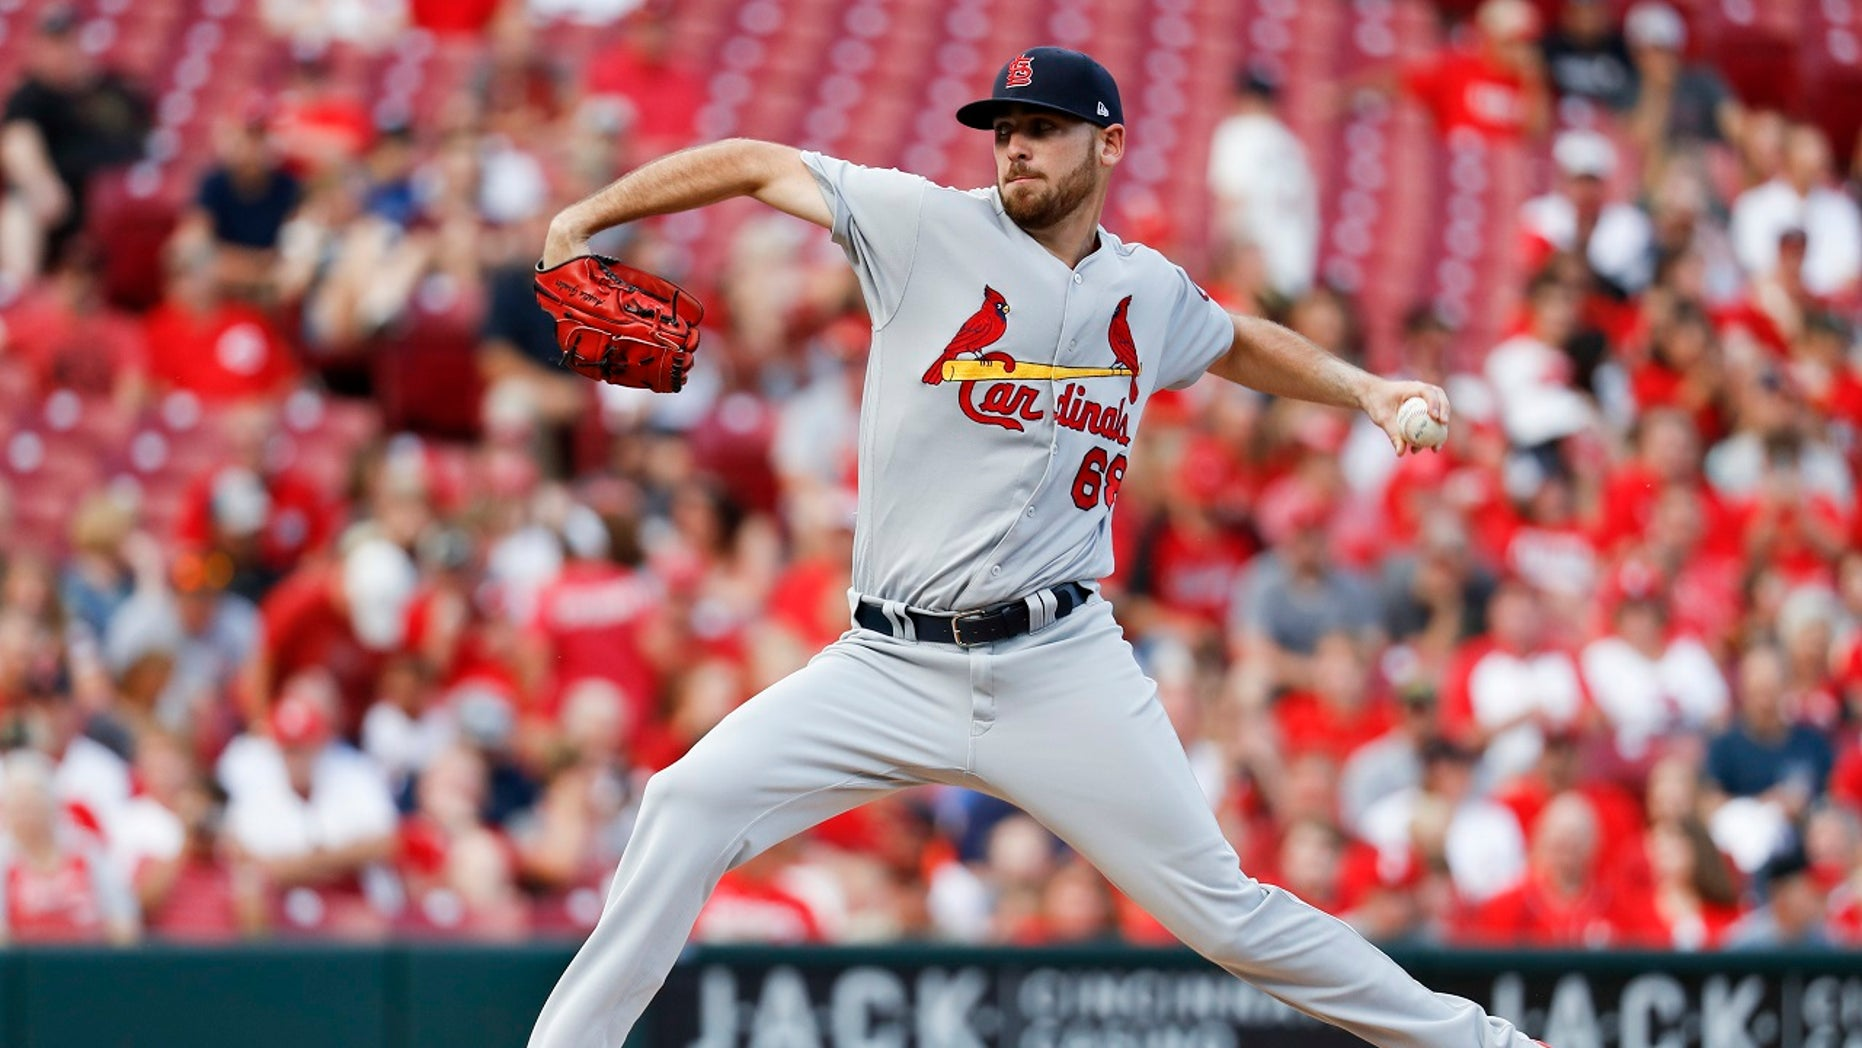 St. Louis Cardinals rookie Austin Gomber was pitching a no-hitter against the Cincinnati Reds going into the seventh inning before a fire alarm went off at Great American Ball Park.